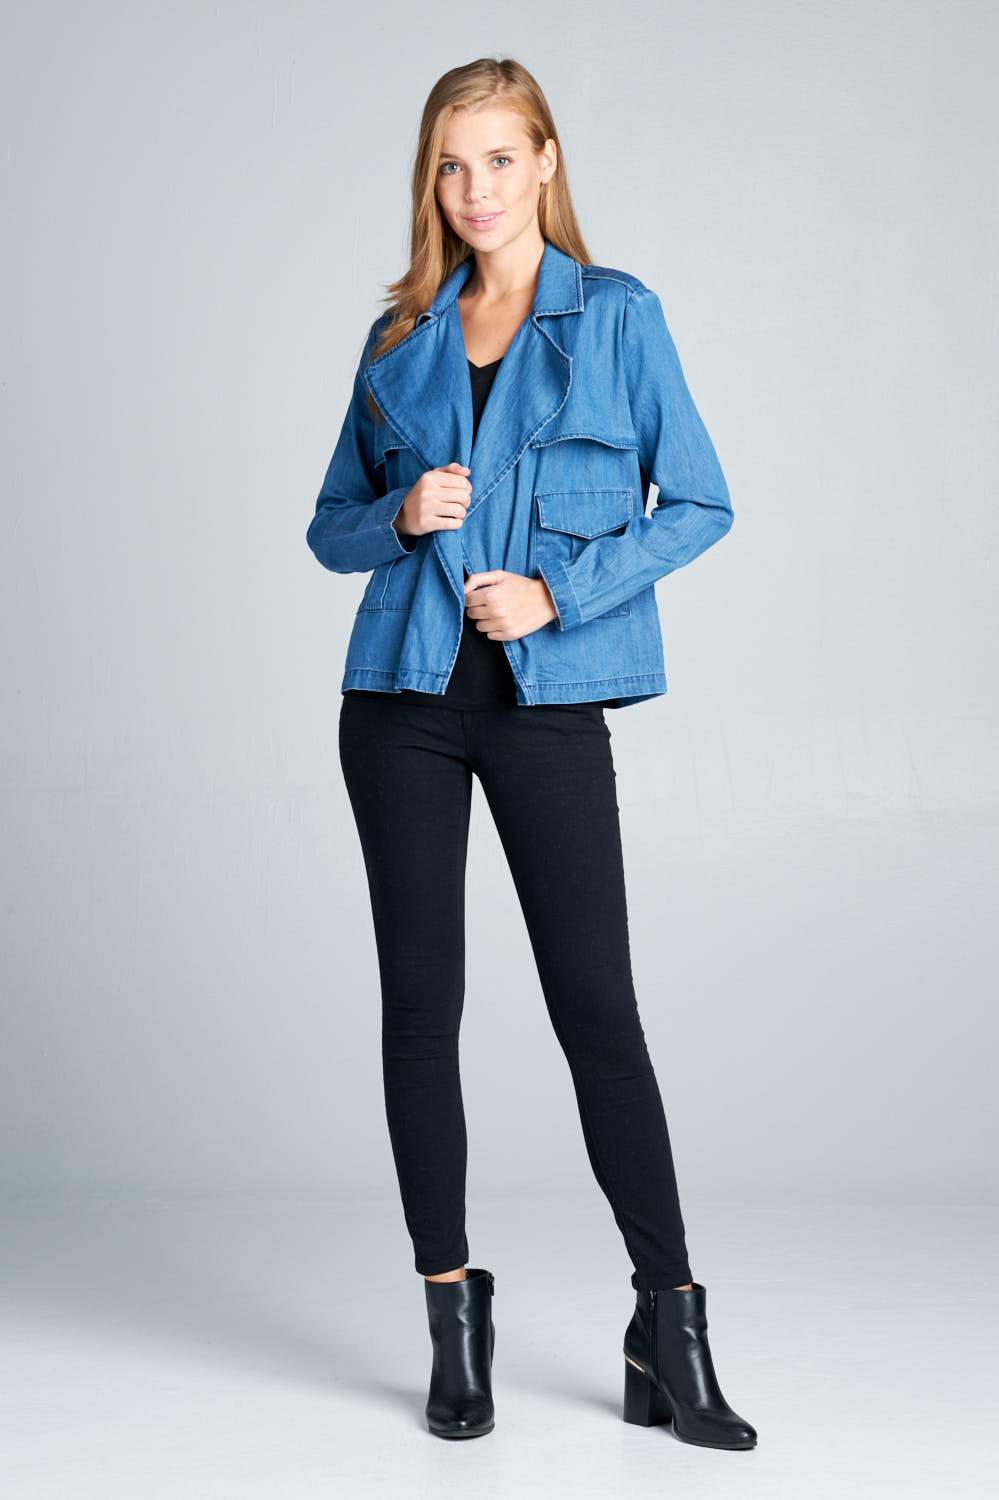 LONG SLEEVE DENIM BLAZER WITH POCKETS - Tiny Town Essentials